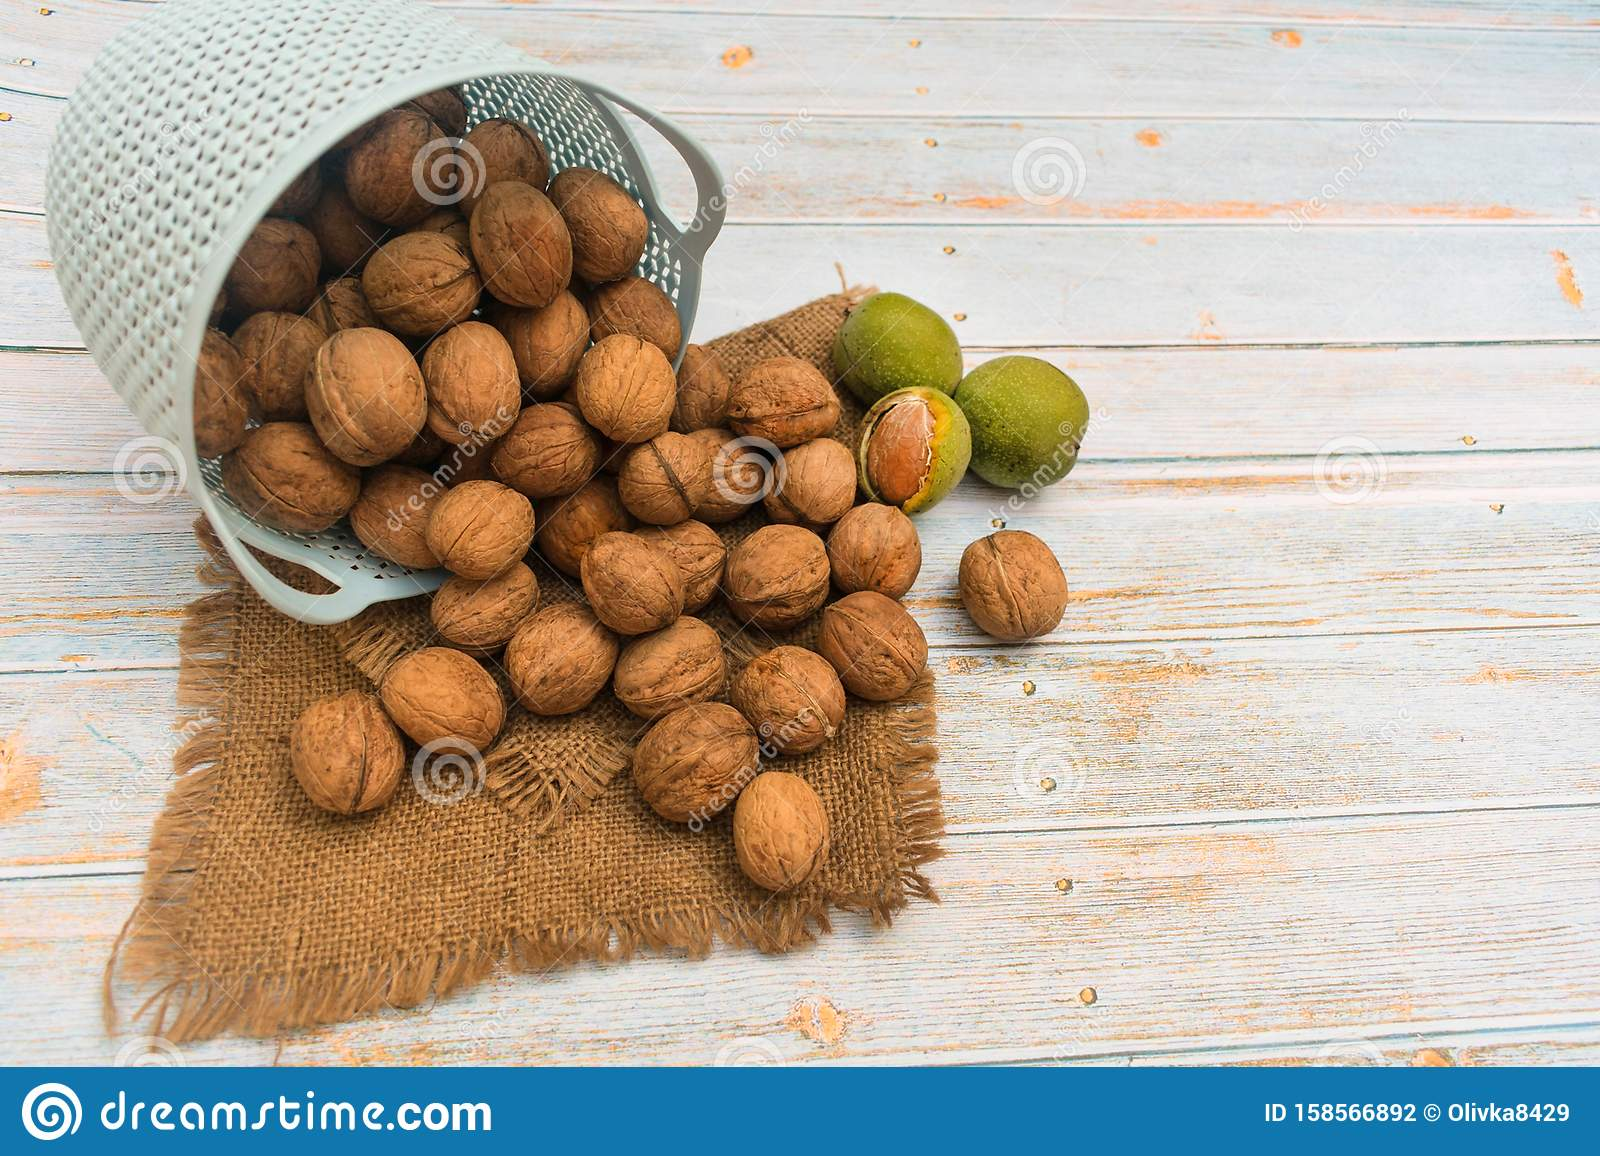 Inshell walnuts in a basket on a light wooden background.